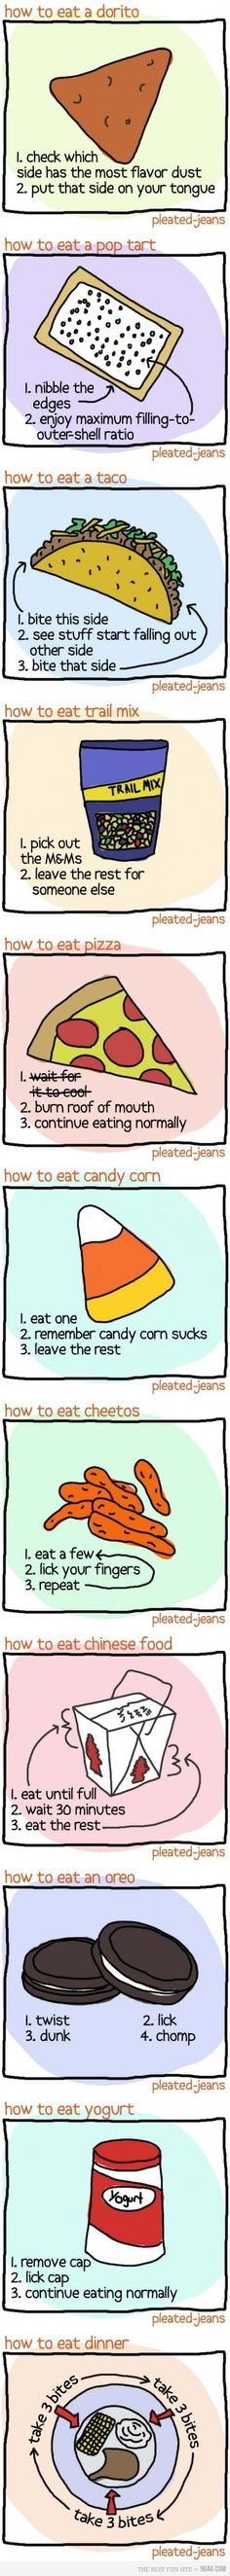 How to eat.  I do all these...except candy corn because I love that stuff!